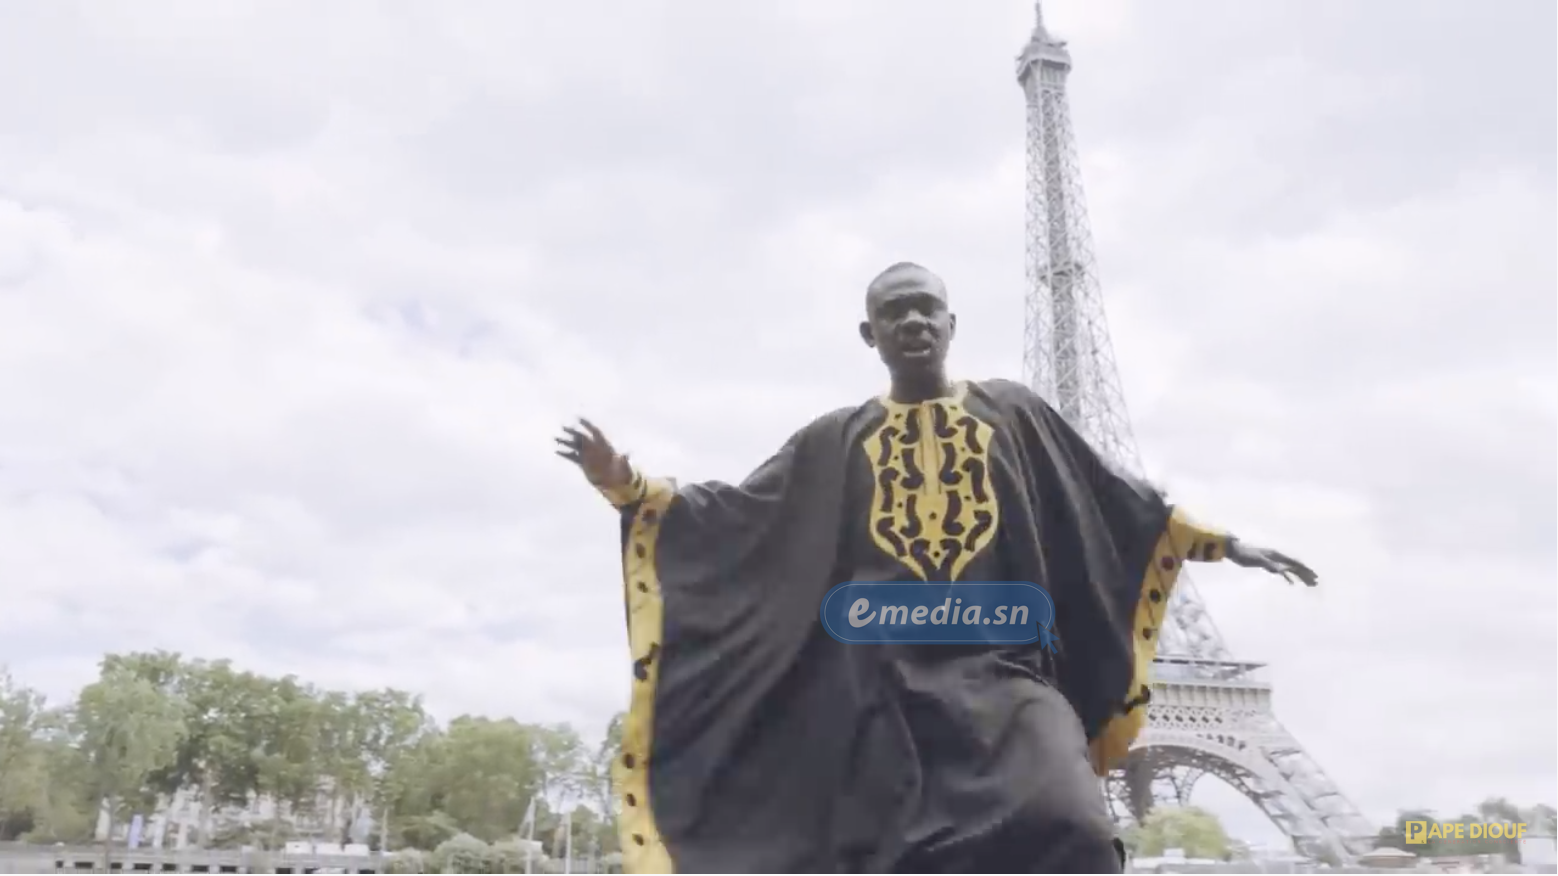 [VIDEO] : PARIS - DAKAR, LE SINGLE QUI ANNONCE LE NOUVEAU PAPE DIOUF